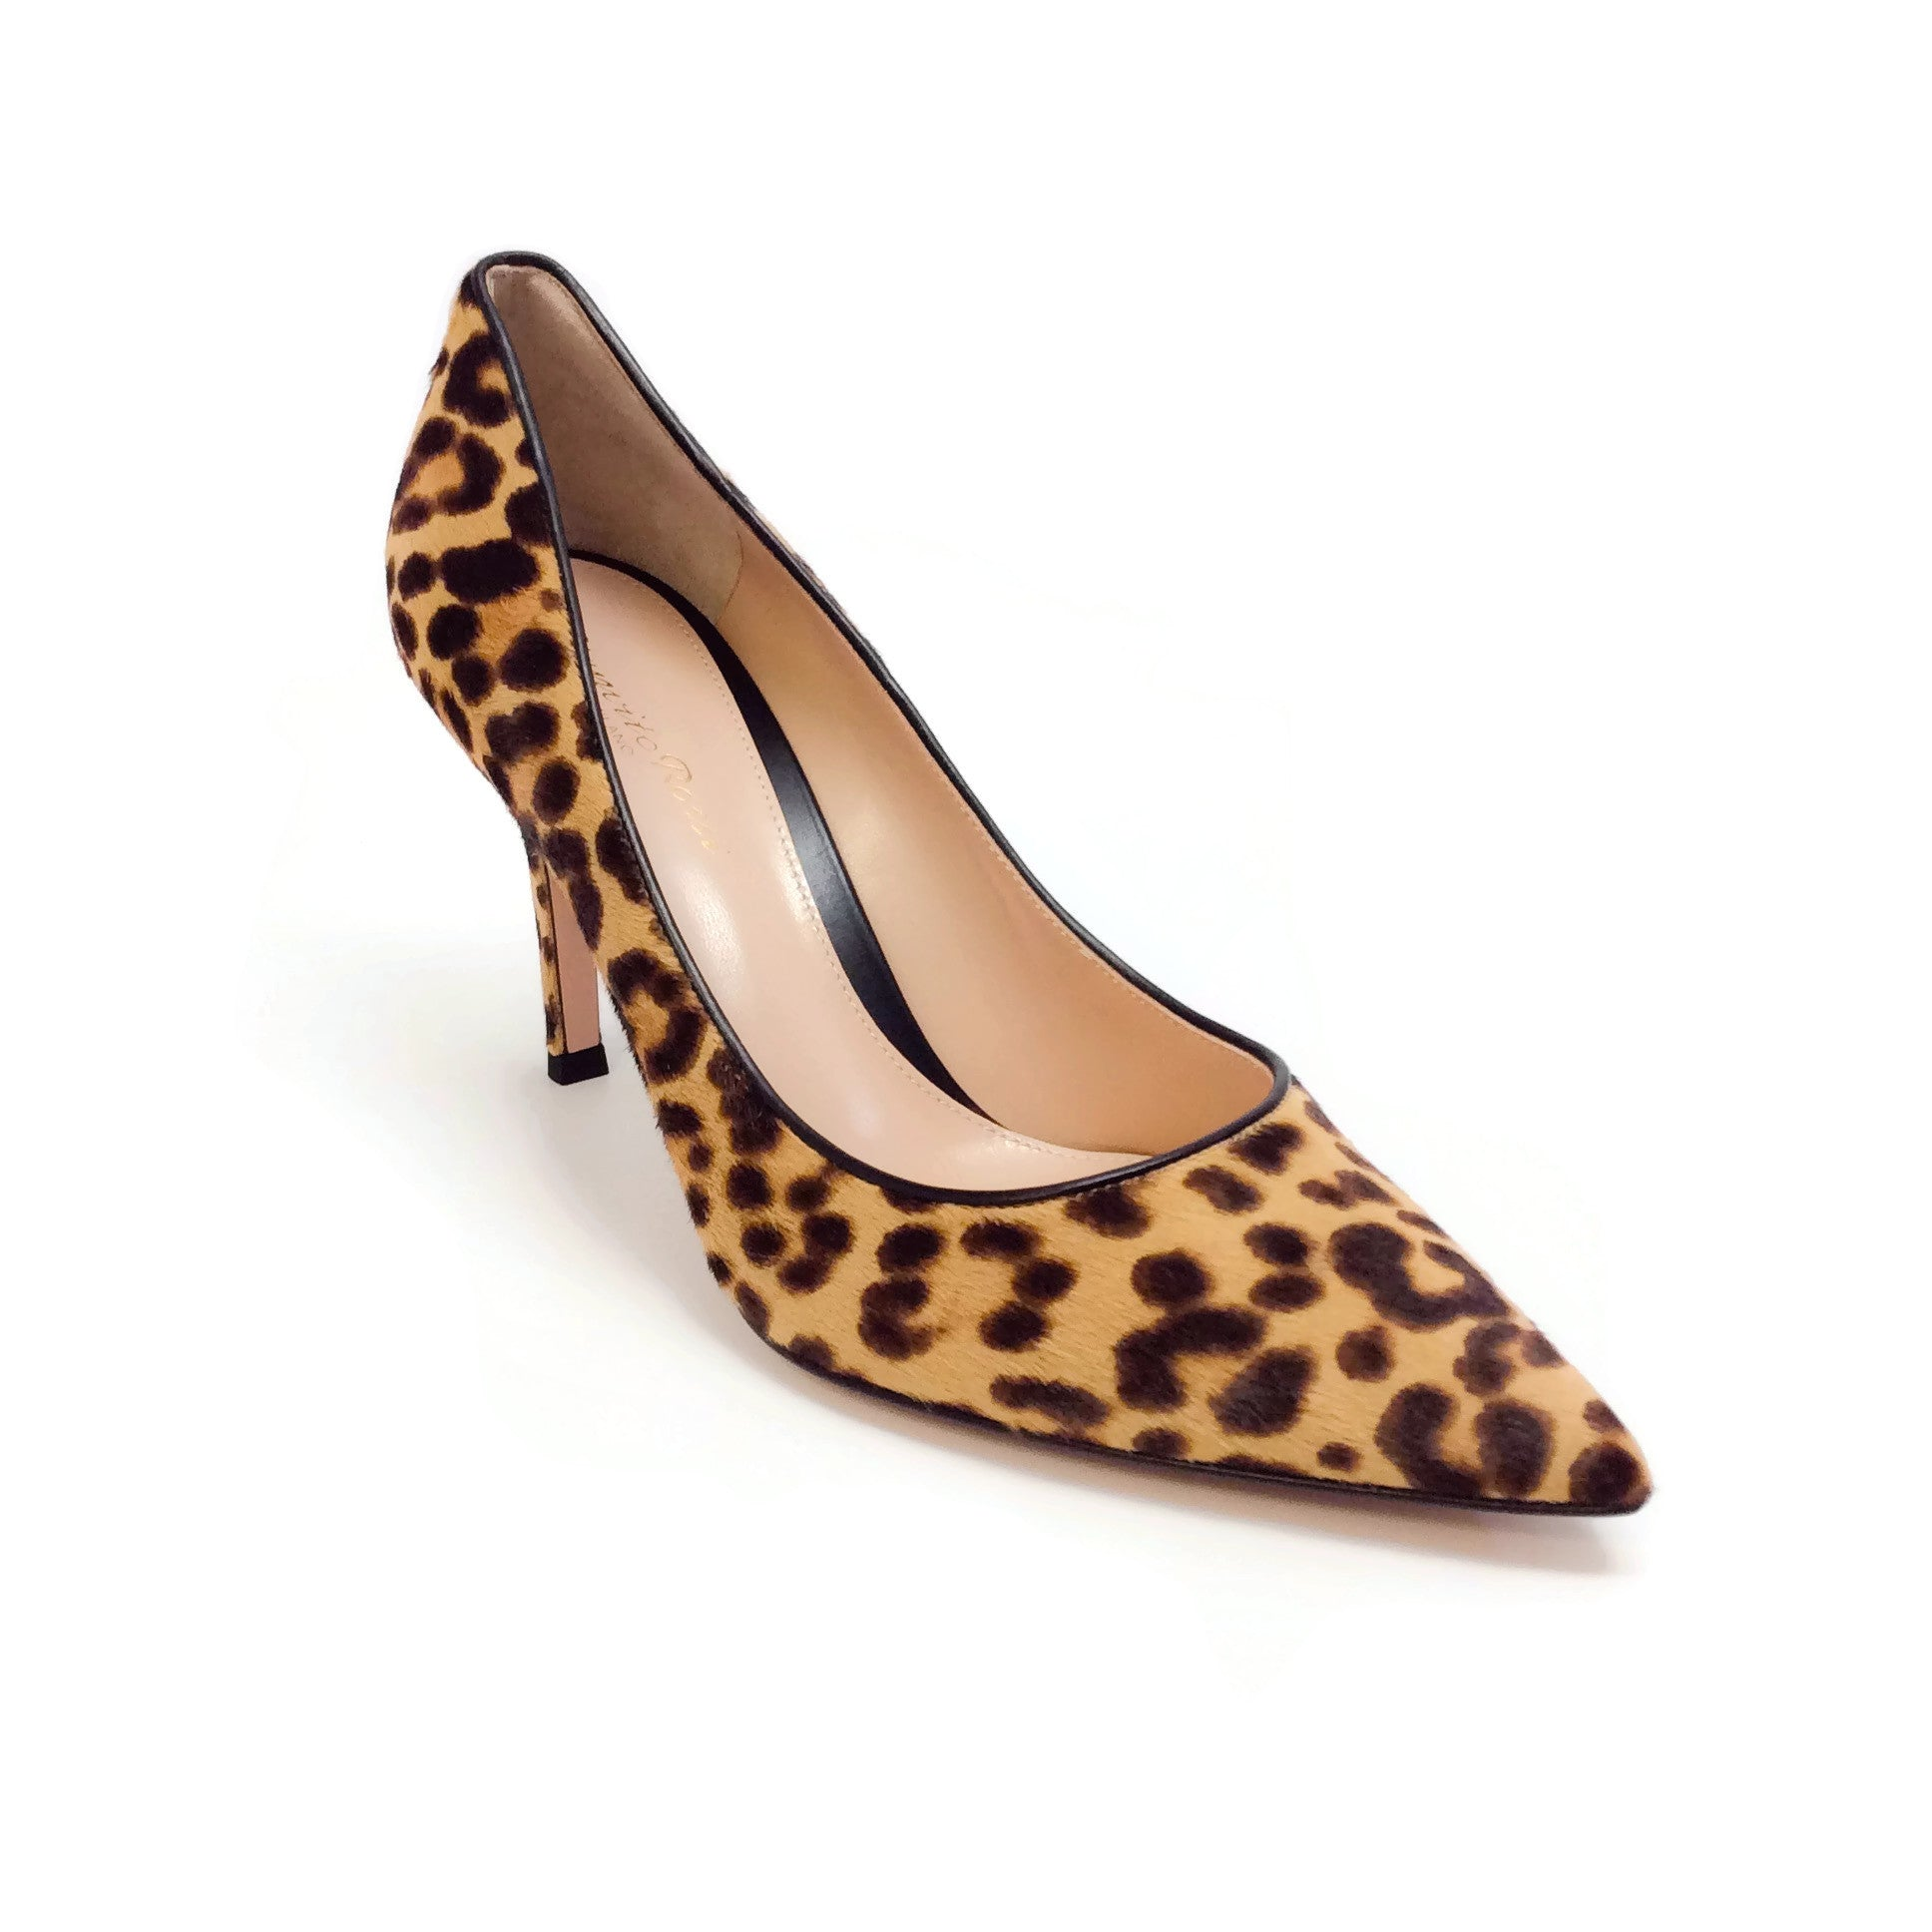 Gianvito Rossi Pony Leopard 85 Pumps